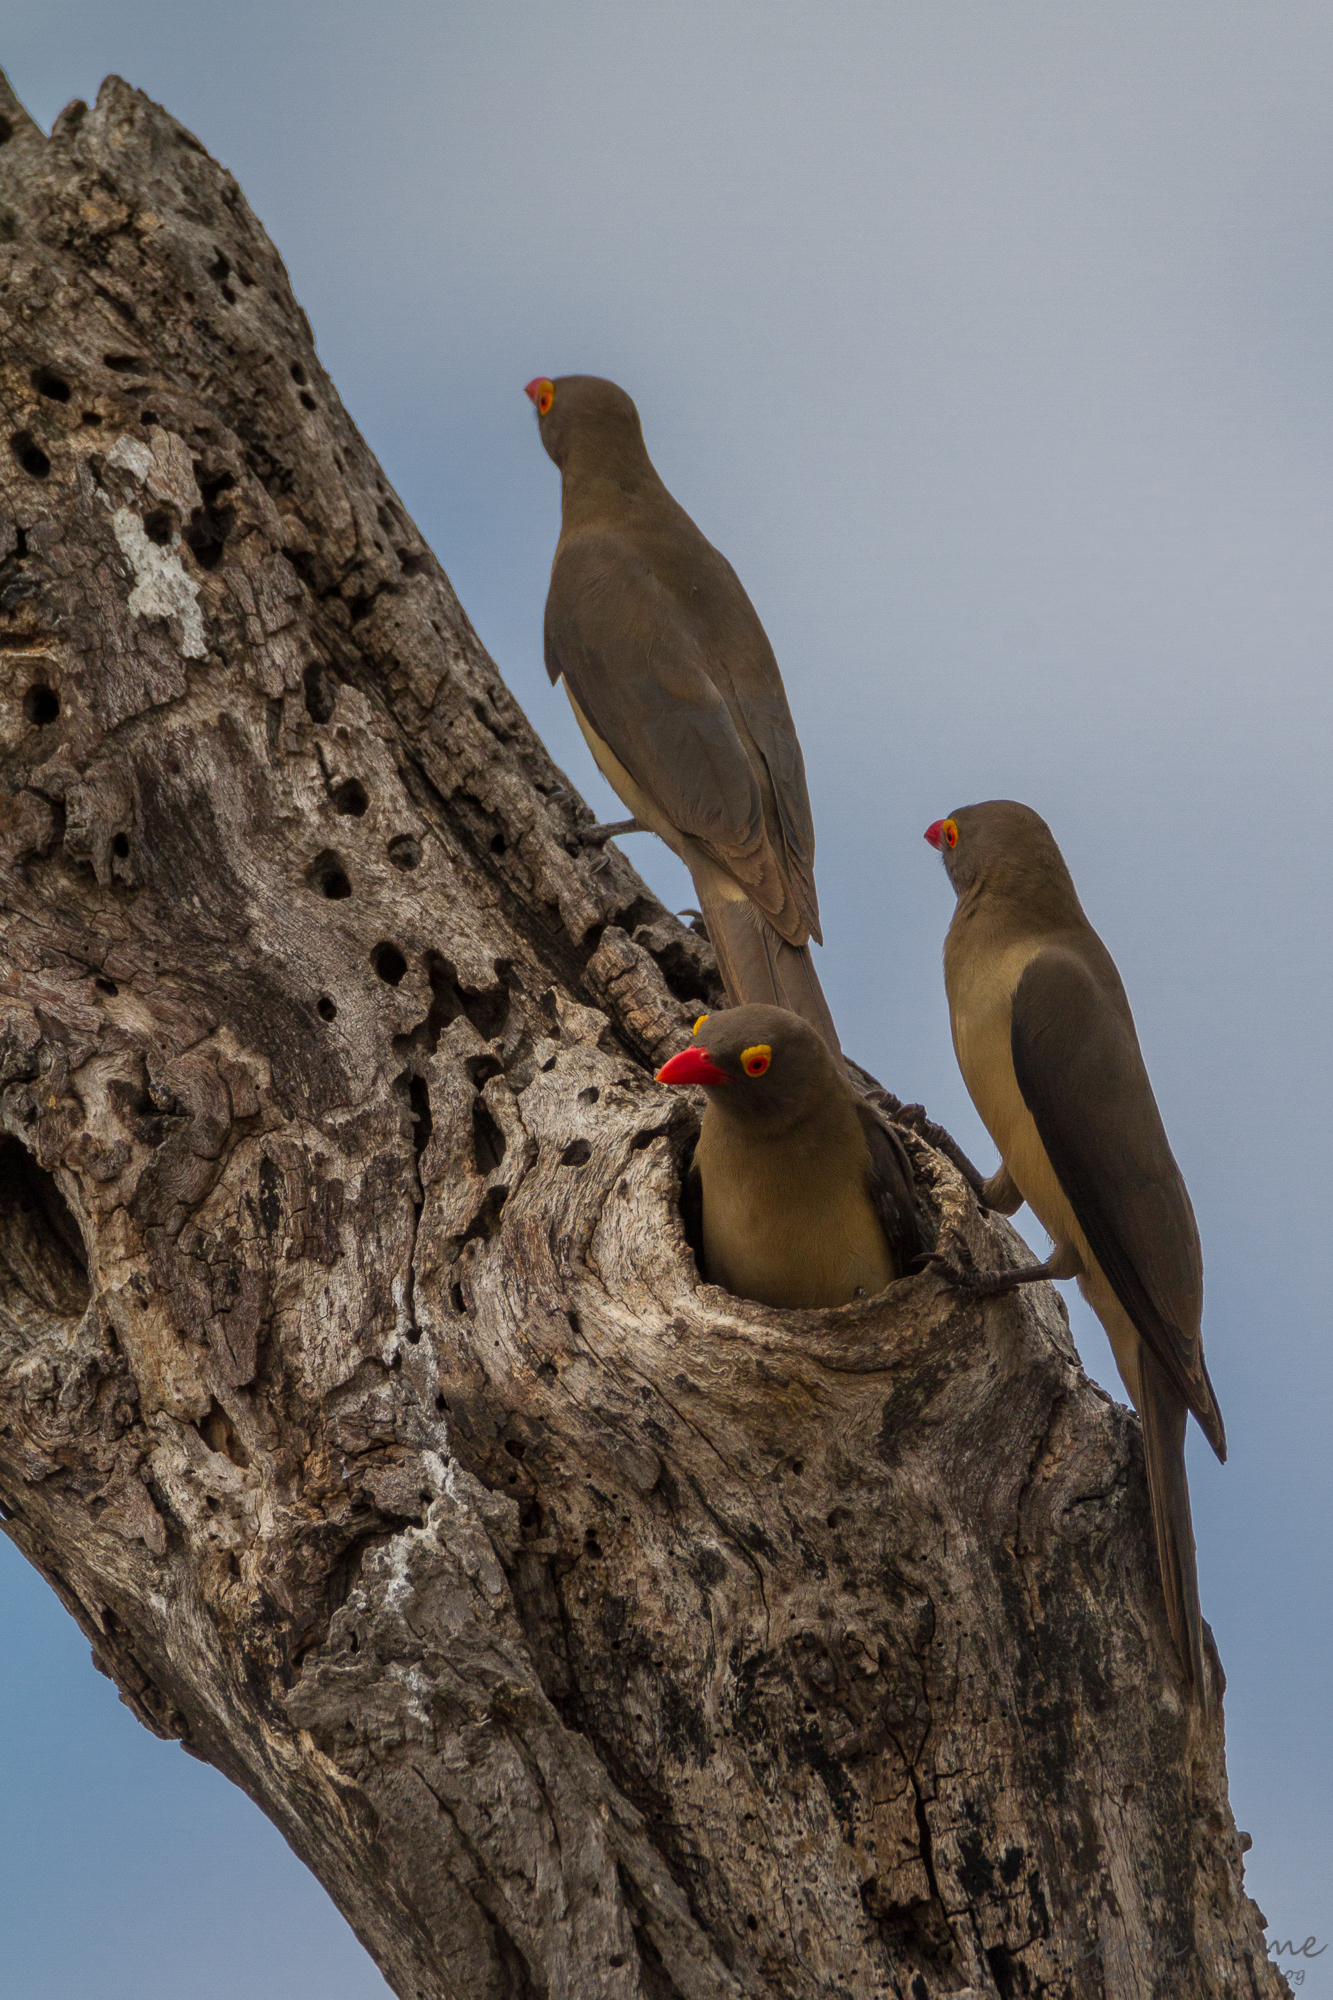 Rotschnabelmadenhacker - Red-billed oxpecker - Buphagus erythrorhynchus